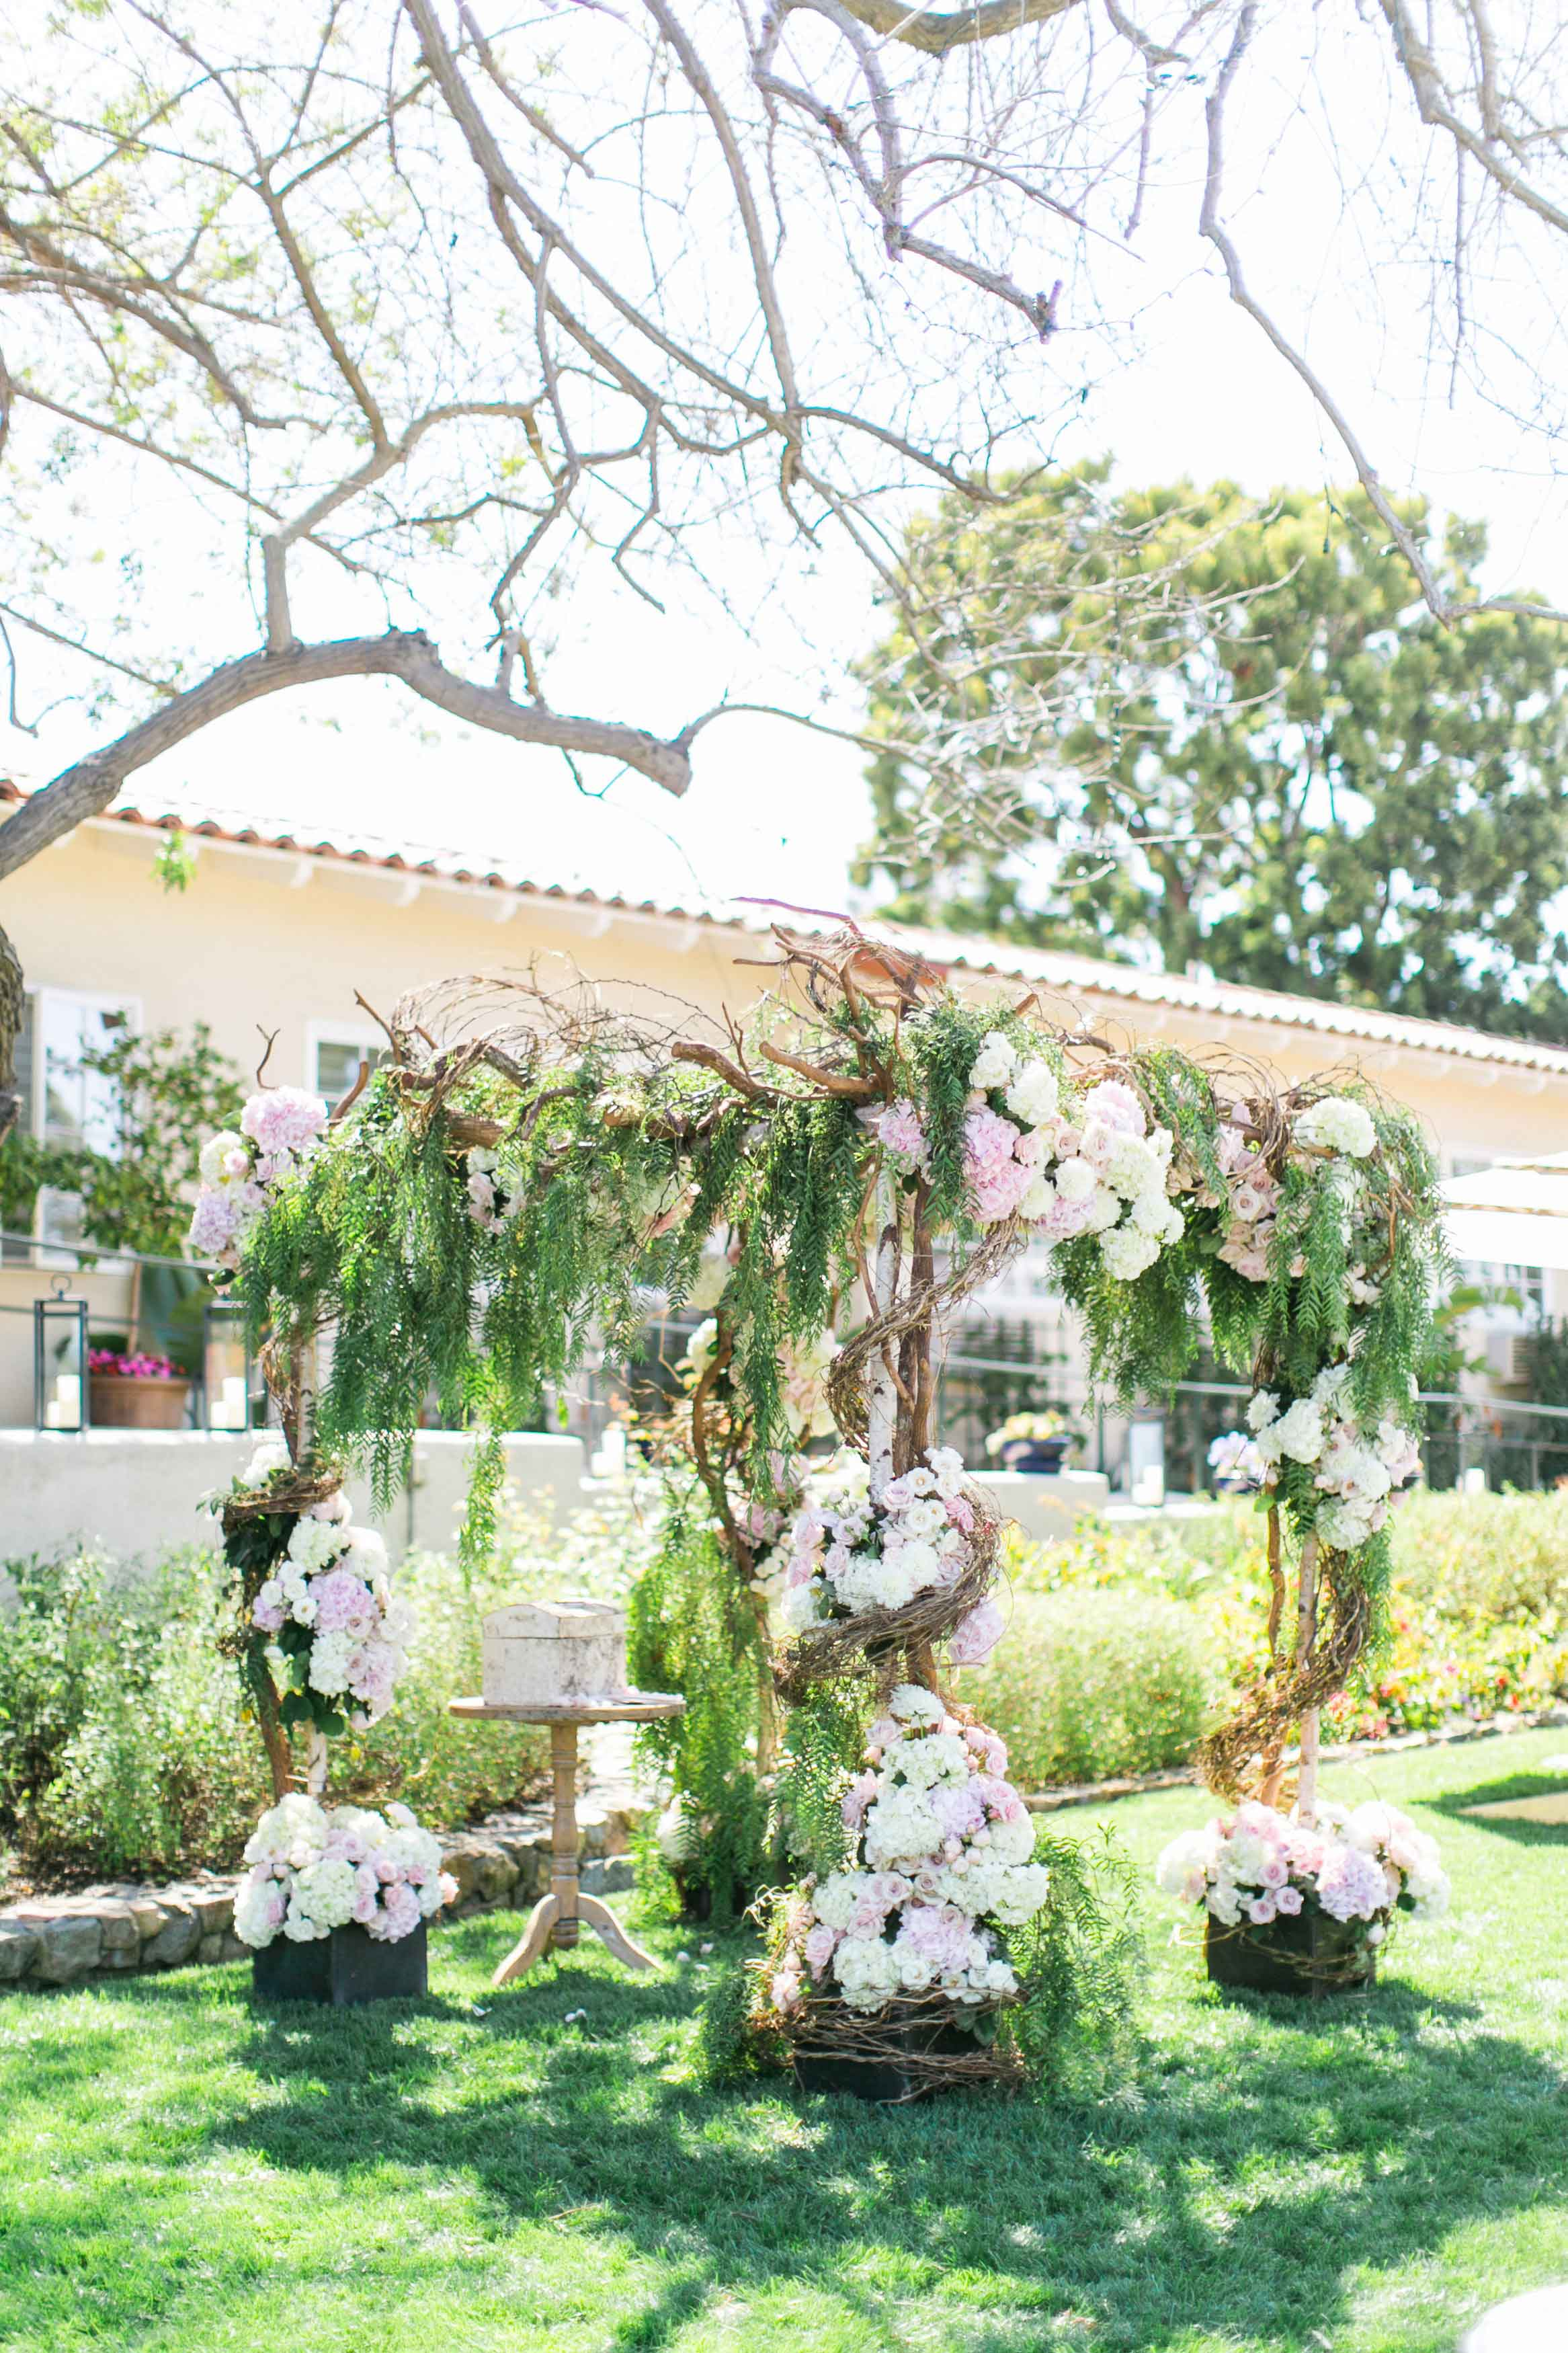 Pantone's 2017 Color of the Year Greenery Inspiration outdoor wedding ceremony greenery lawn branch chuppah